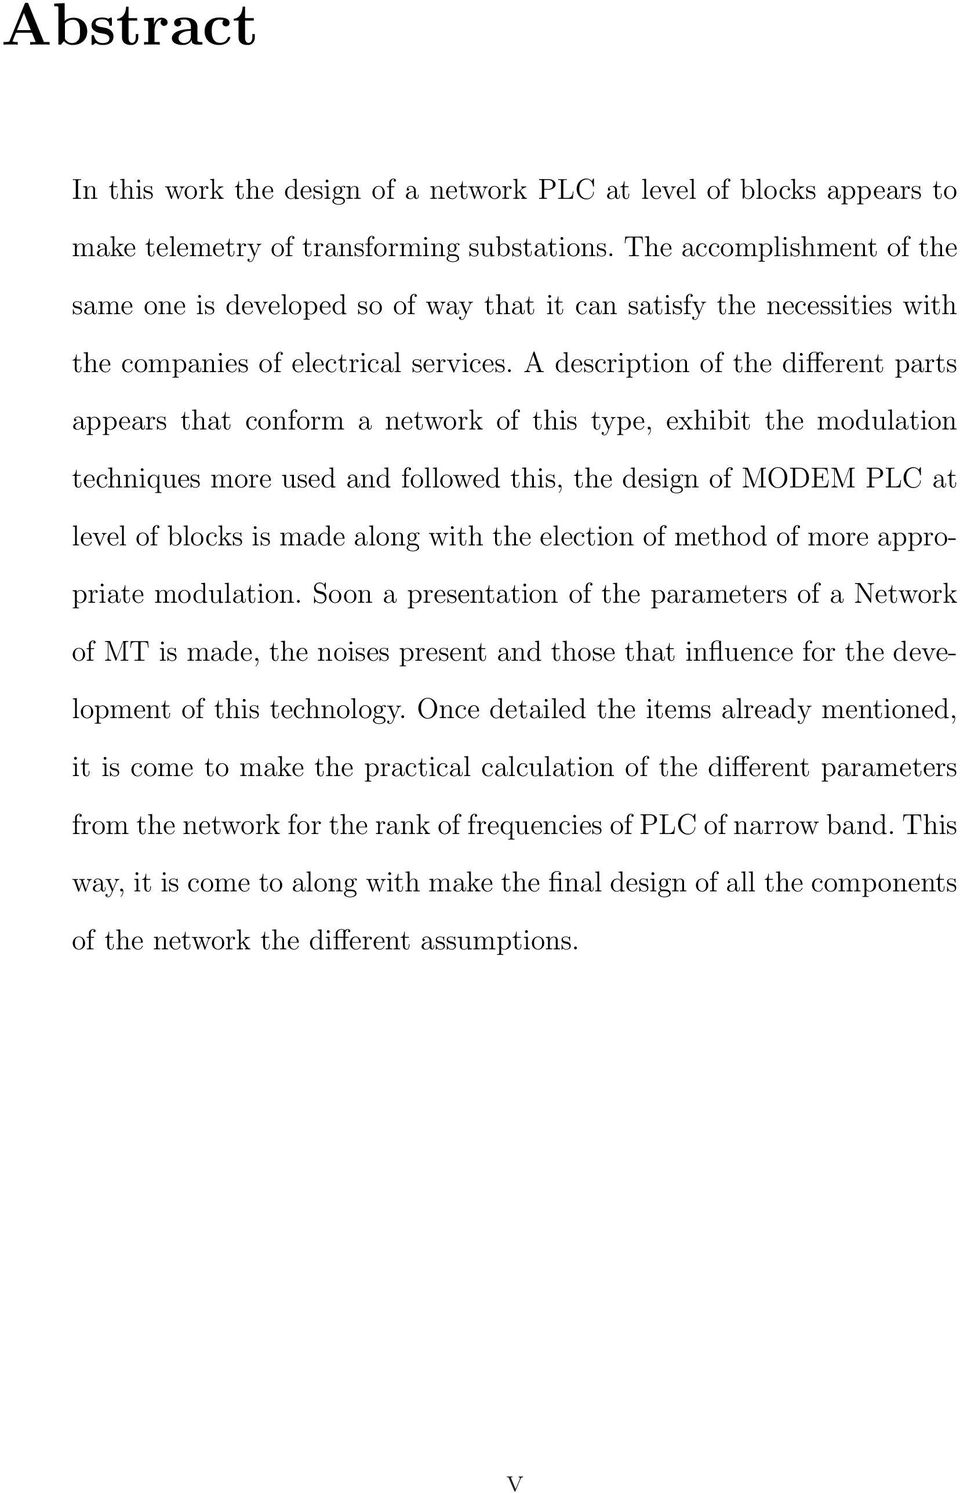 A description of the different parts appears that conform a network of this type, exhibit the modulation techniques more used and followed this, the design of MODEM PLC at level of blocks is made